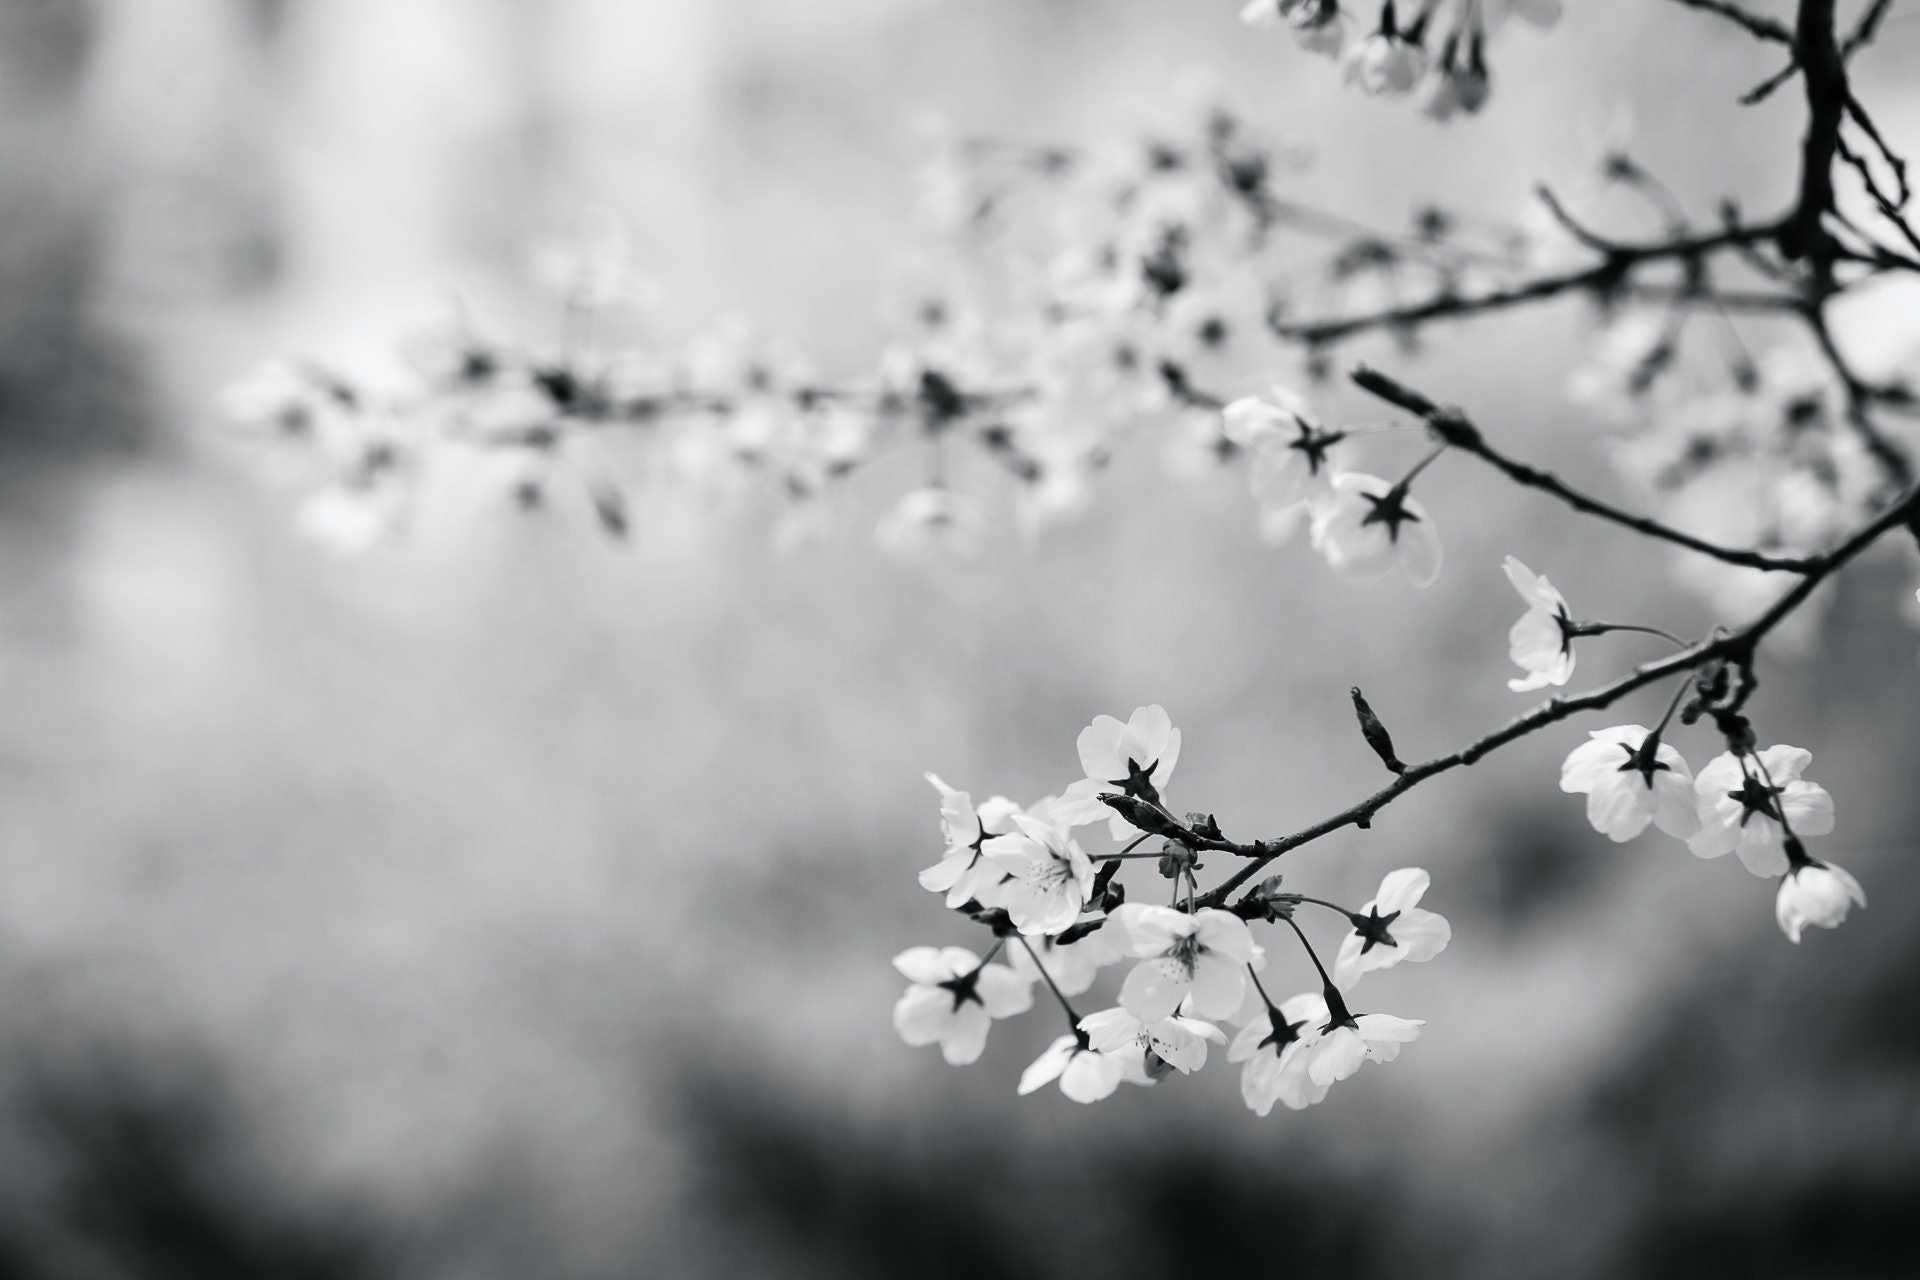 Grayscale photography of flowers lee imho